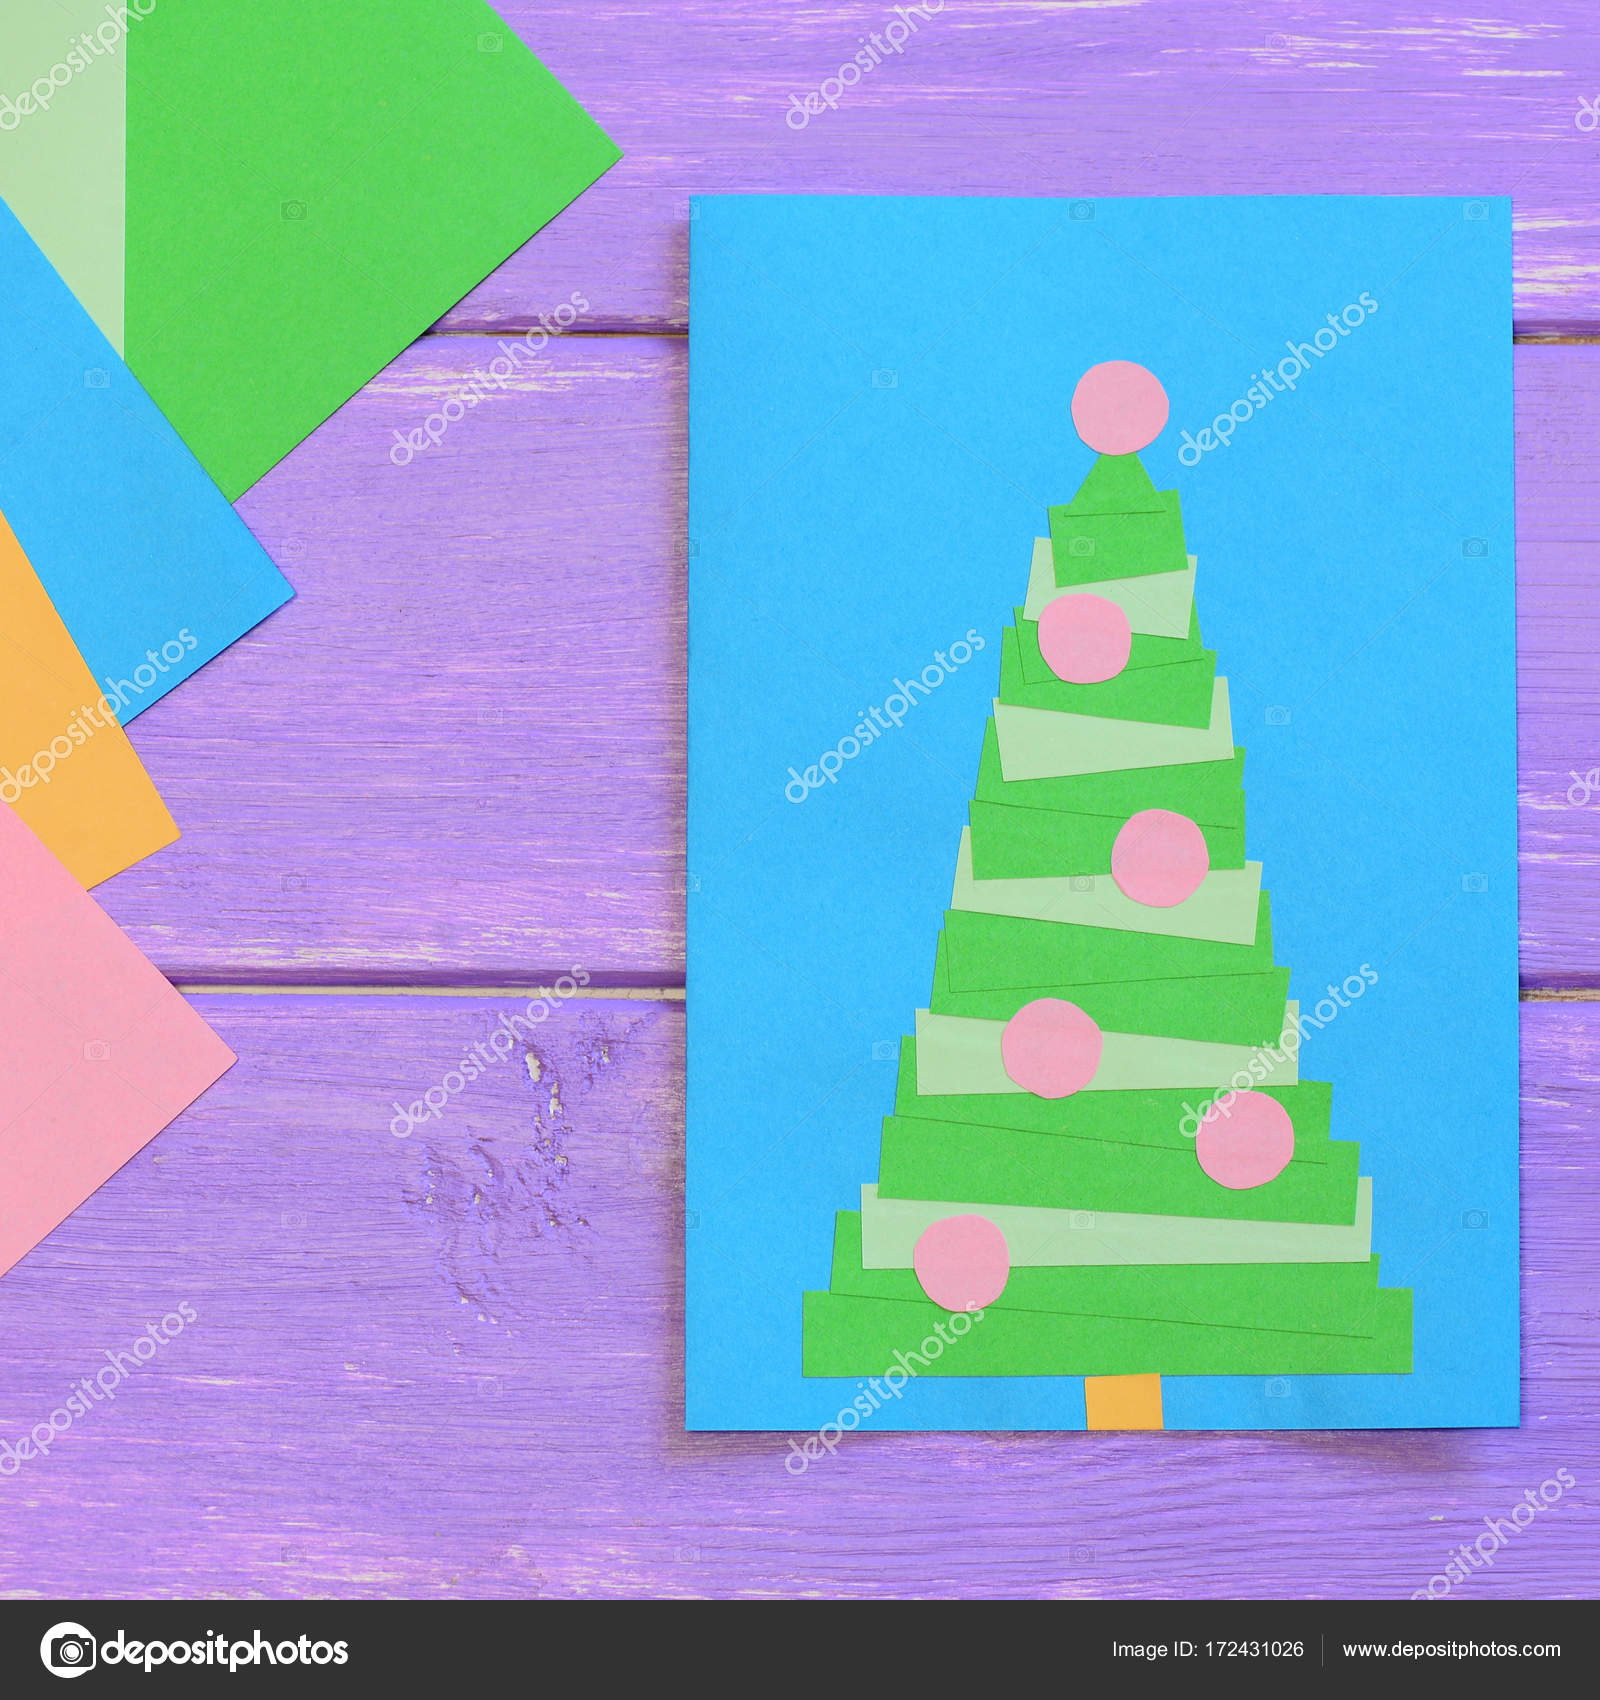 Merry christmas card colored paper sheets on purple wooden table making christmas card christmas card ideas for toddlers childrens christmas cards creating christmas card simple greeting card design m4hsunfo